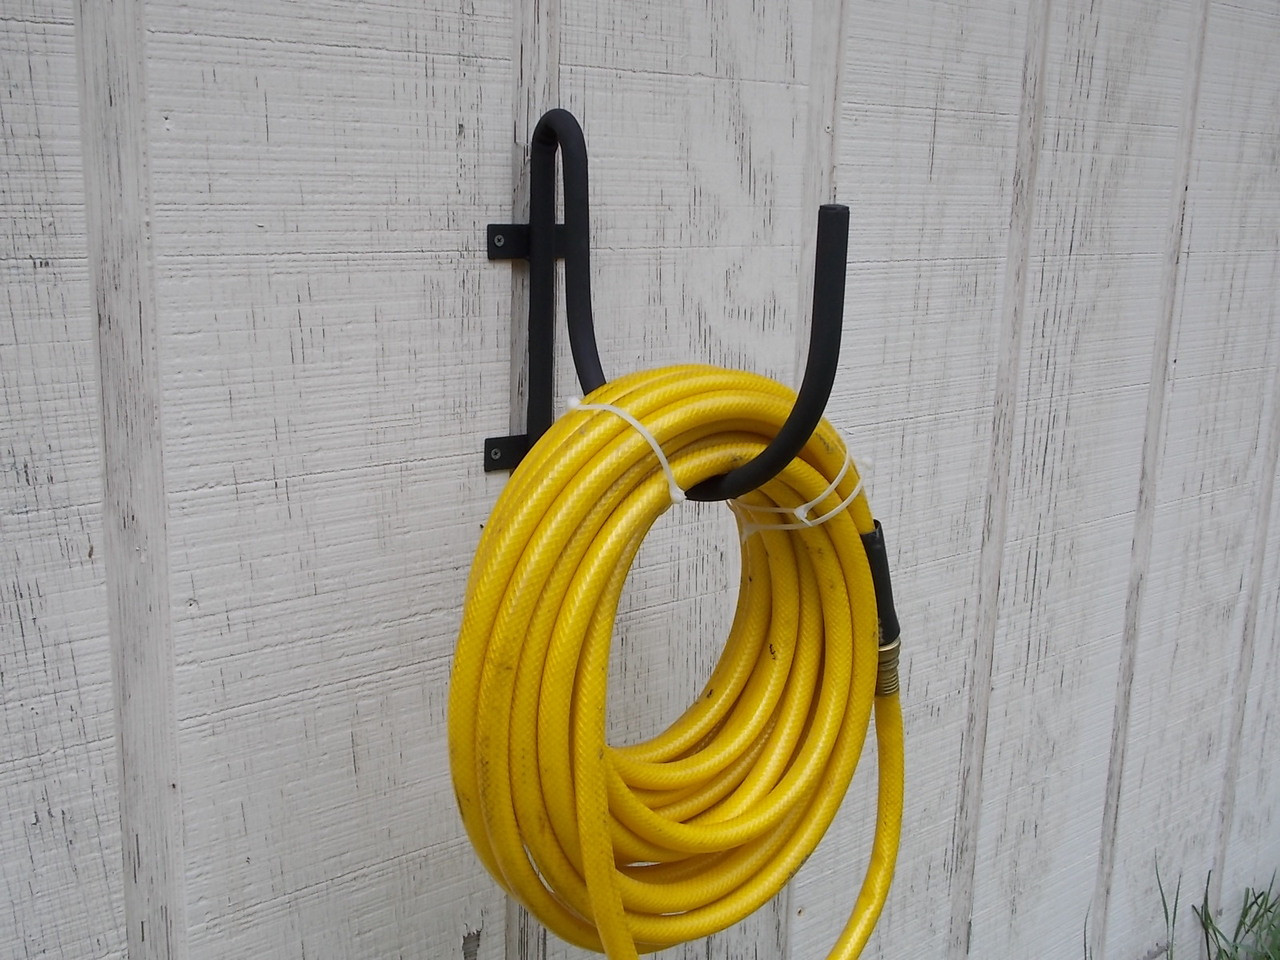 Wall Mount Garden Hose Holder Black Wrought Iron